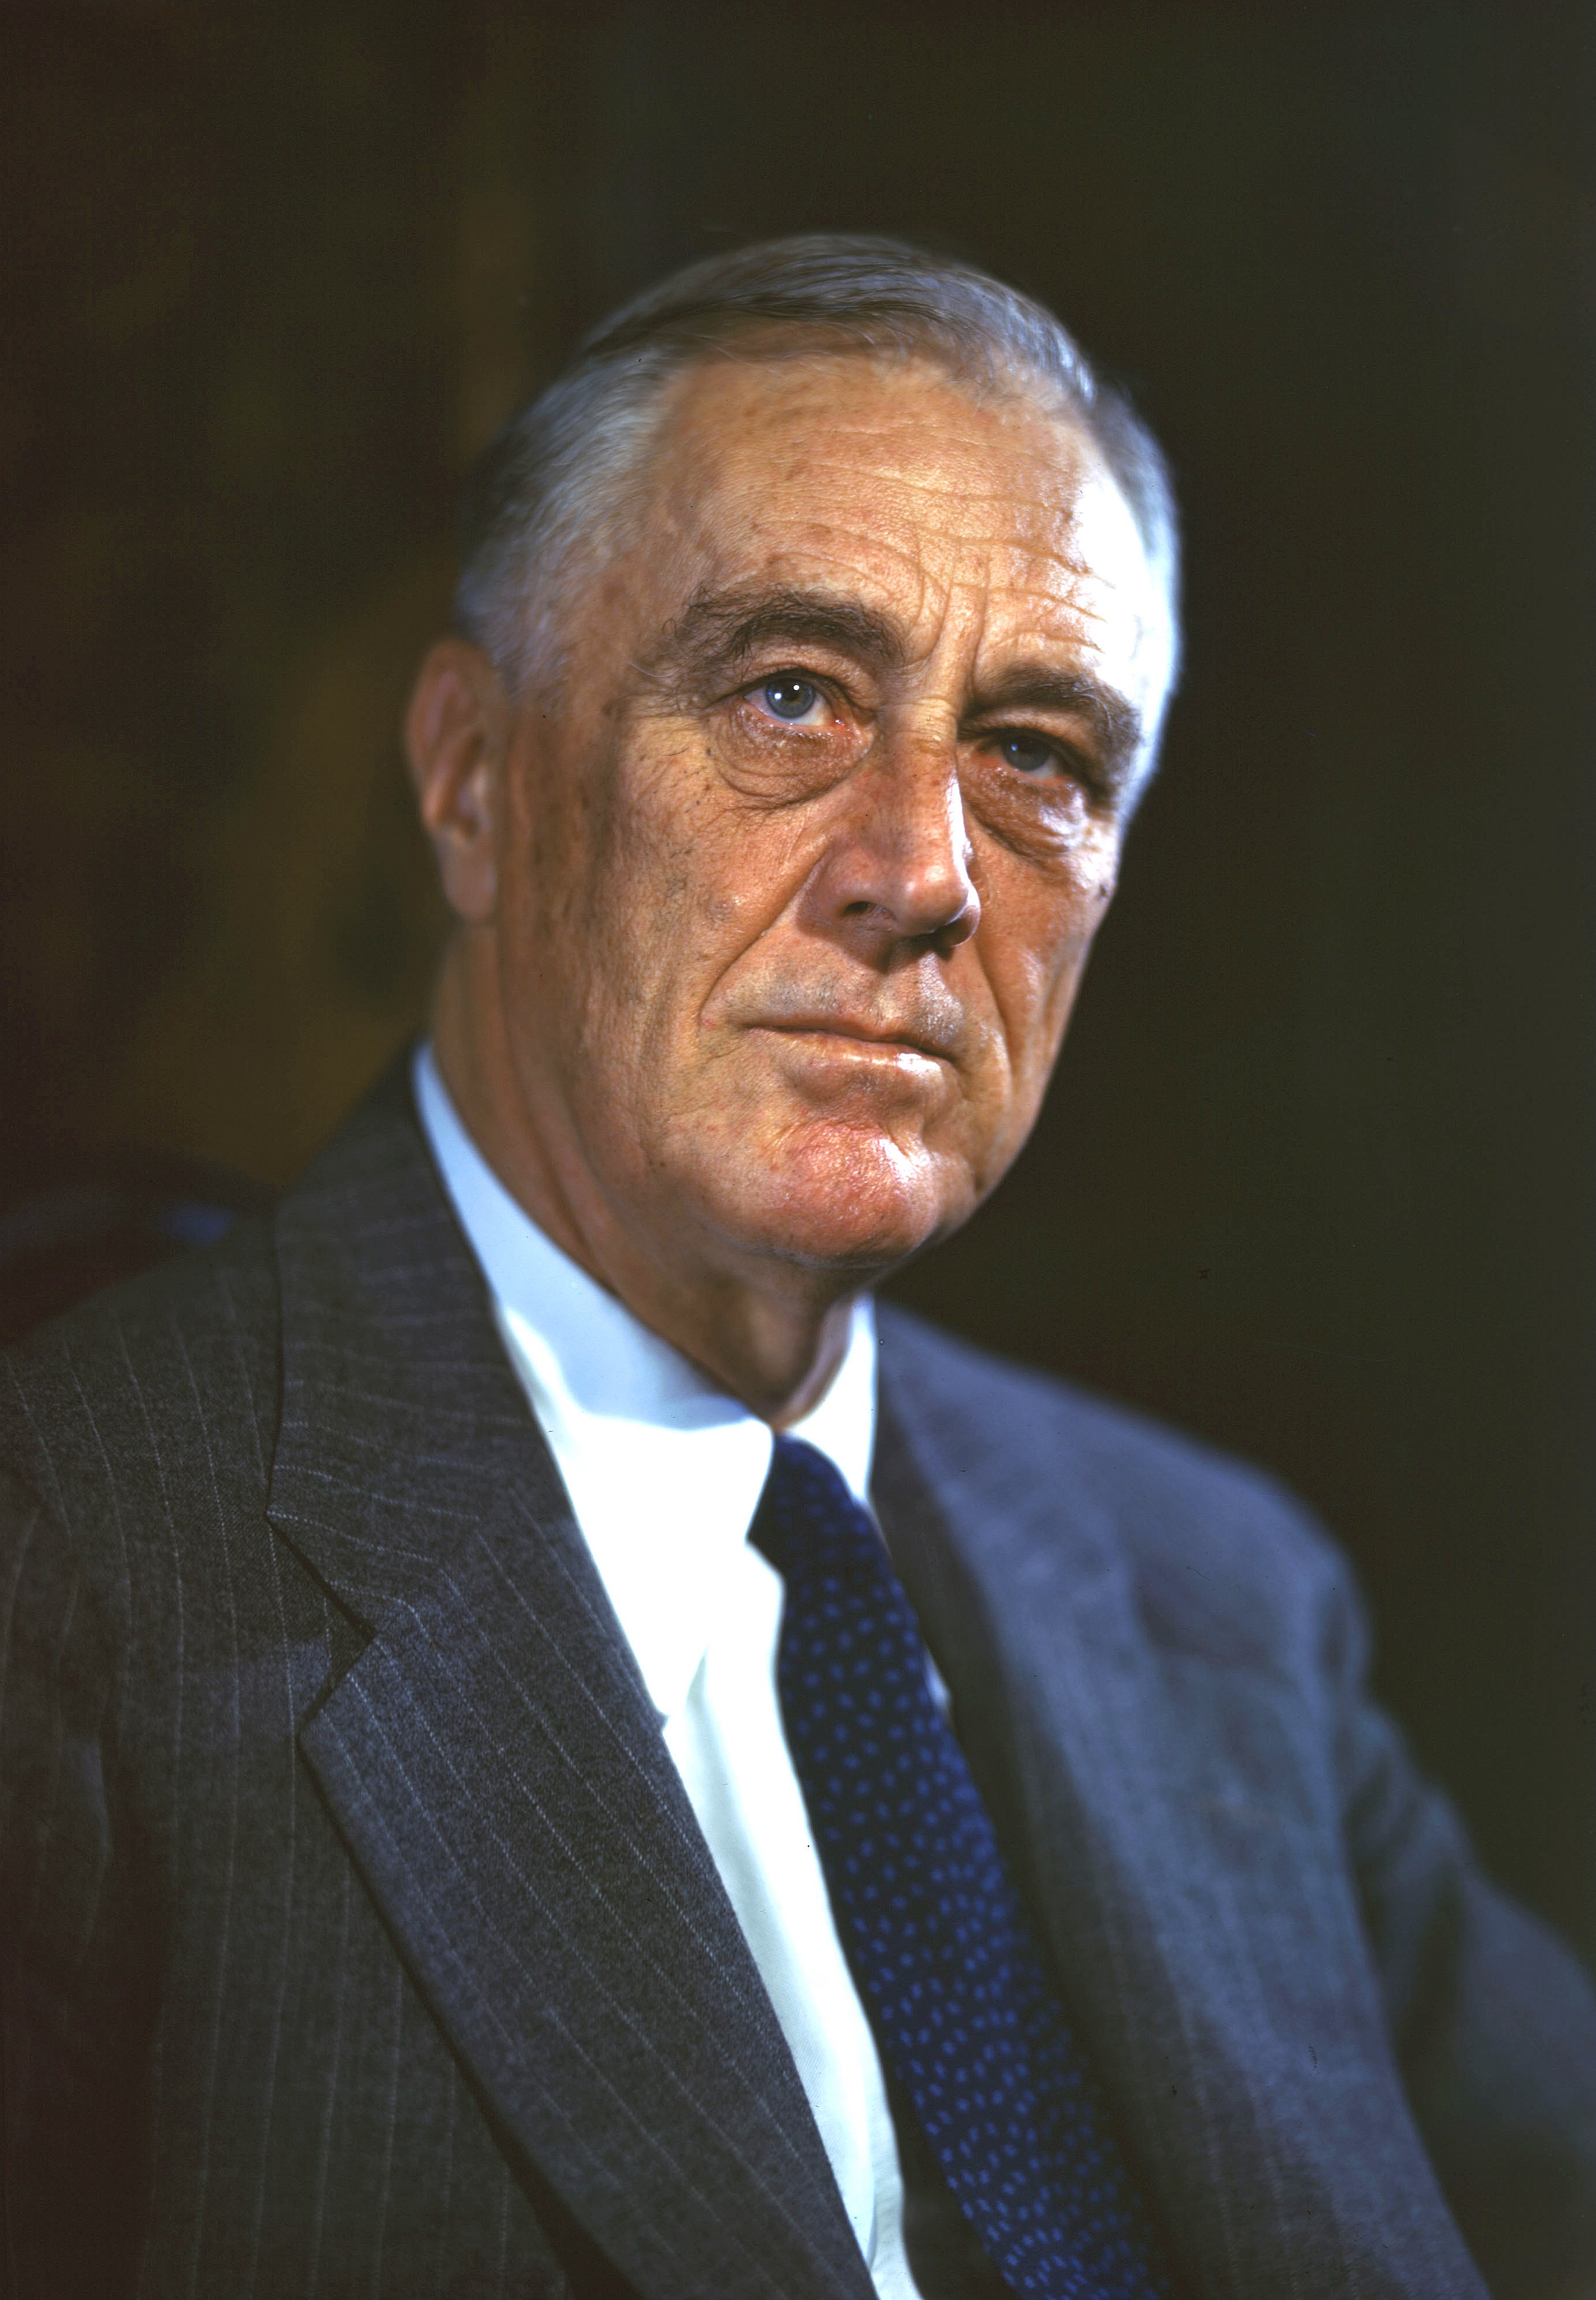 Original color transparency of FDR taken at 1944 Official Campaign Portrait session by Leon A. Perskie, Hyde Park, New York, August 21, 1944.